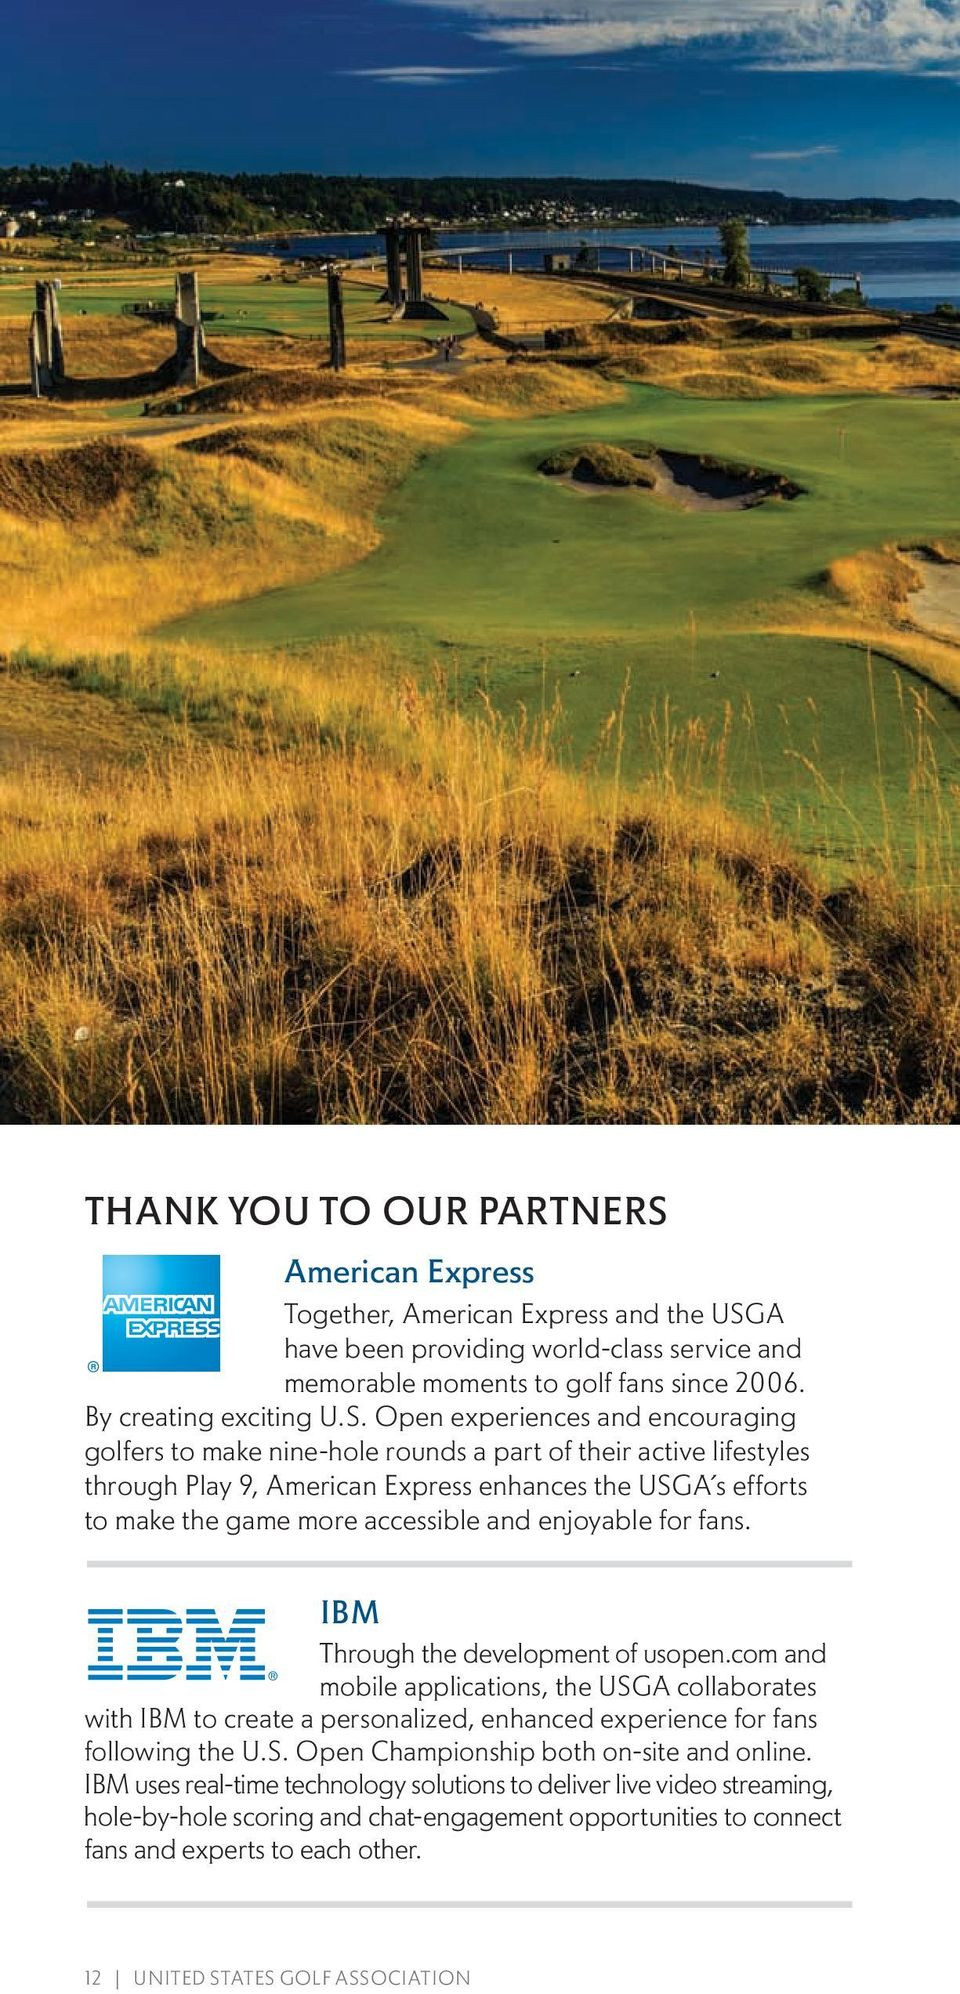 A have been providing world-class service and memorable moments to golf fans since 2006. By creating exciting U.S.